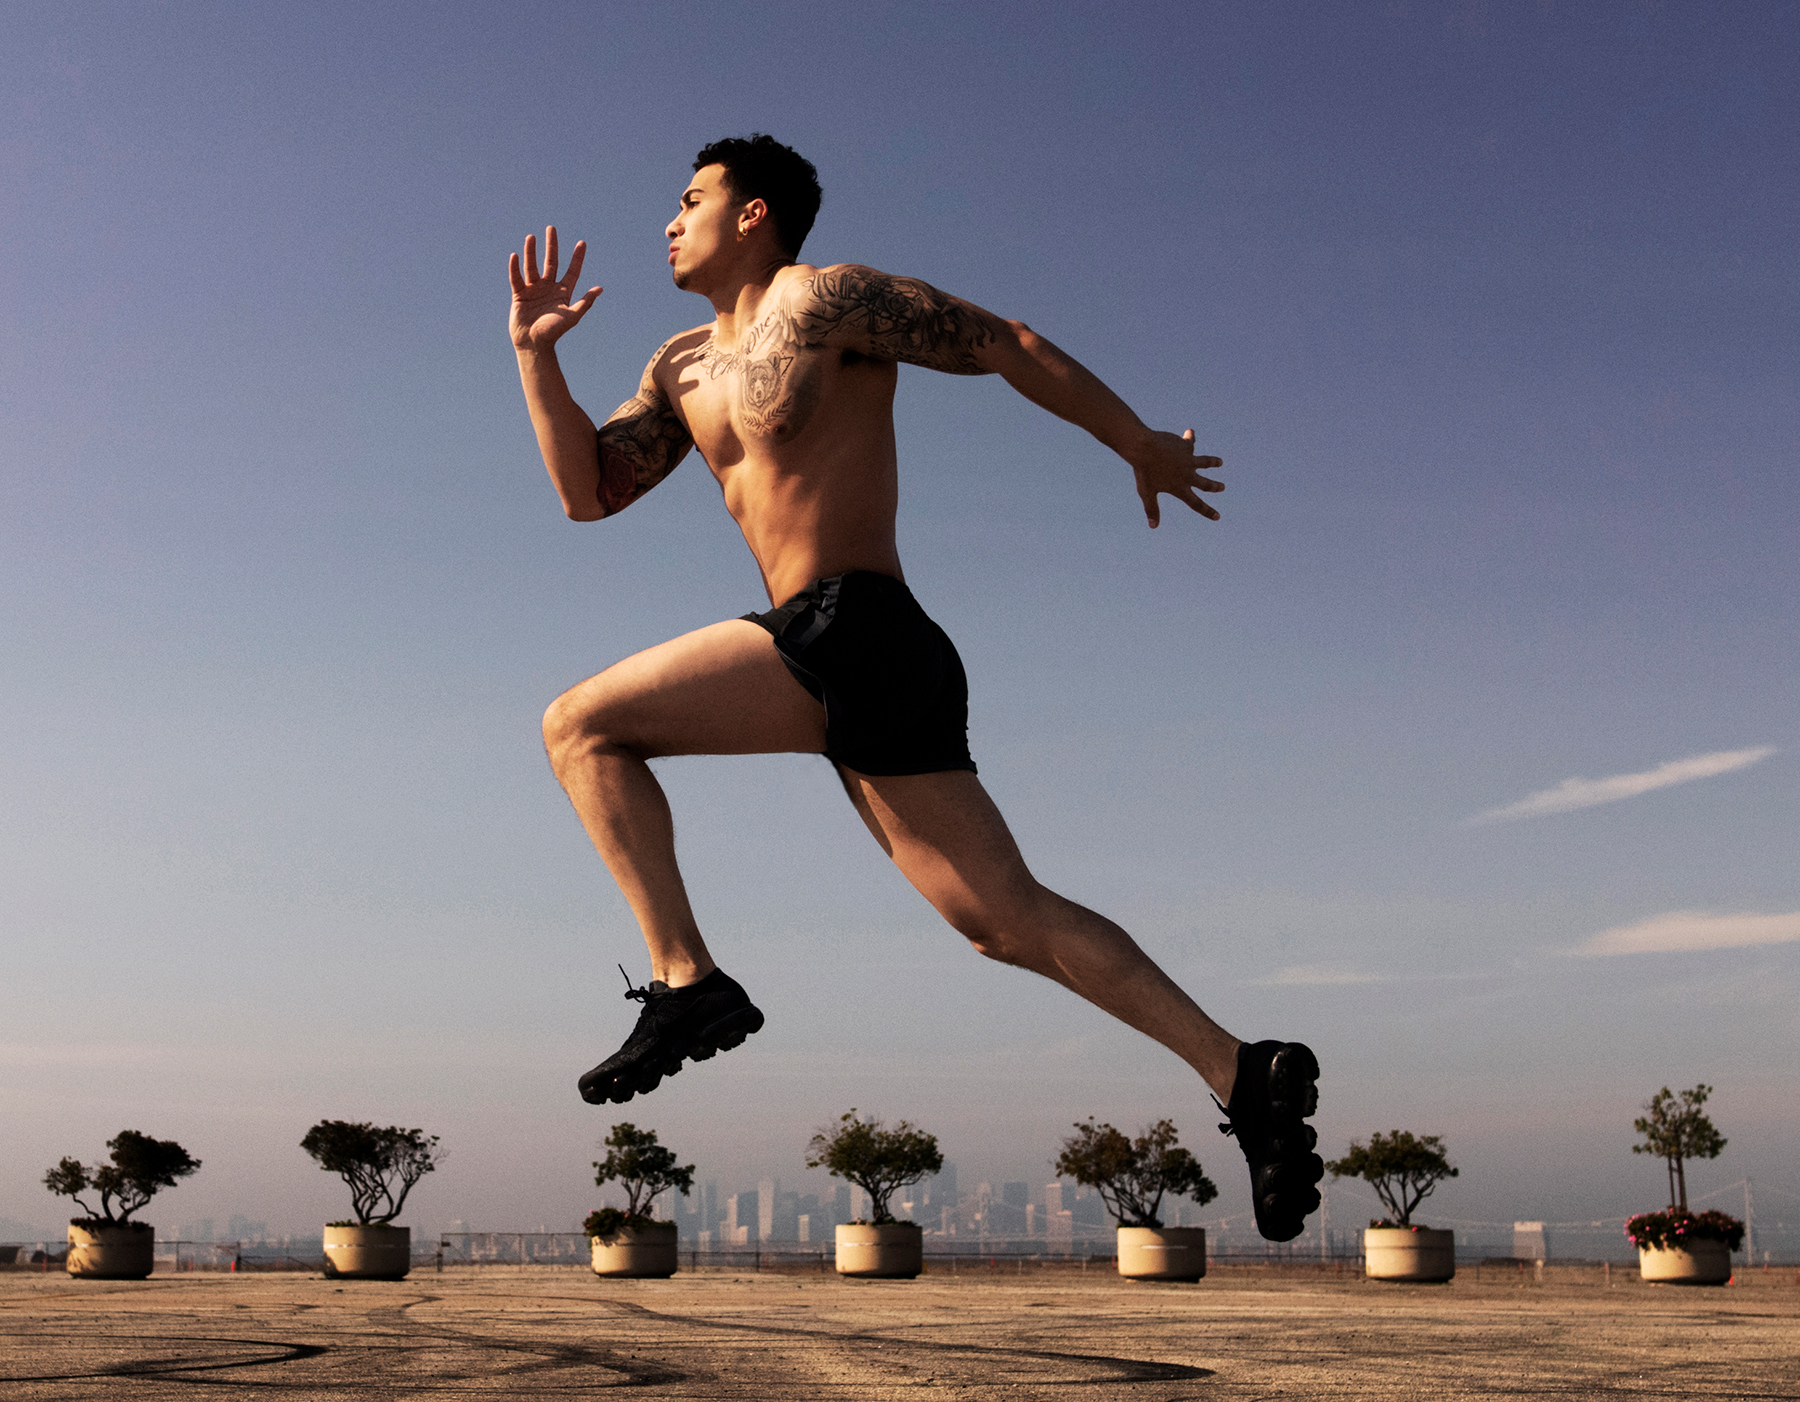 athletic male jumping art director for lifestyle photography